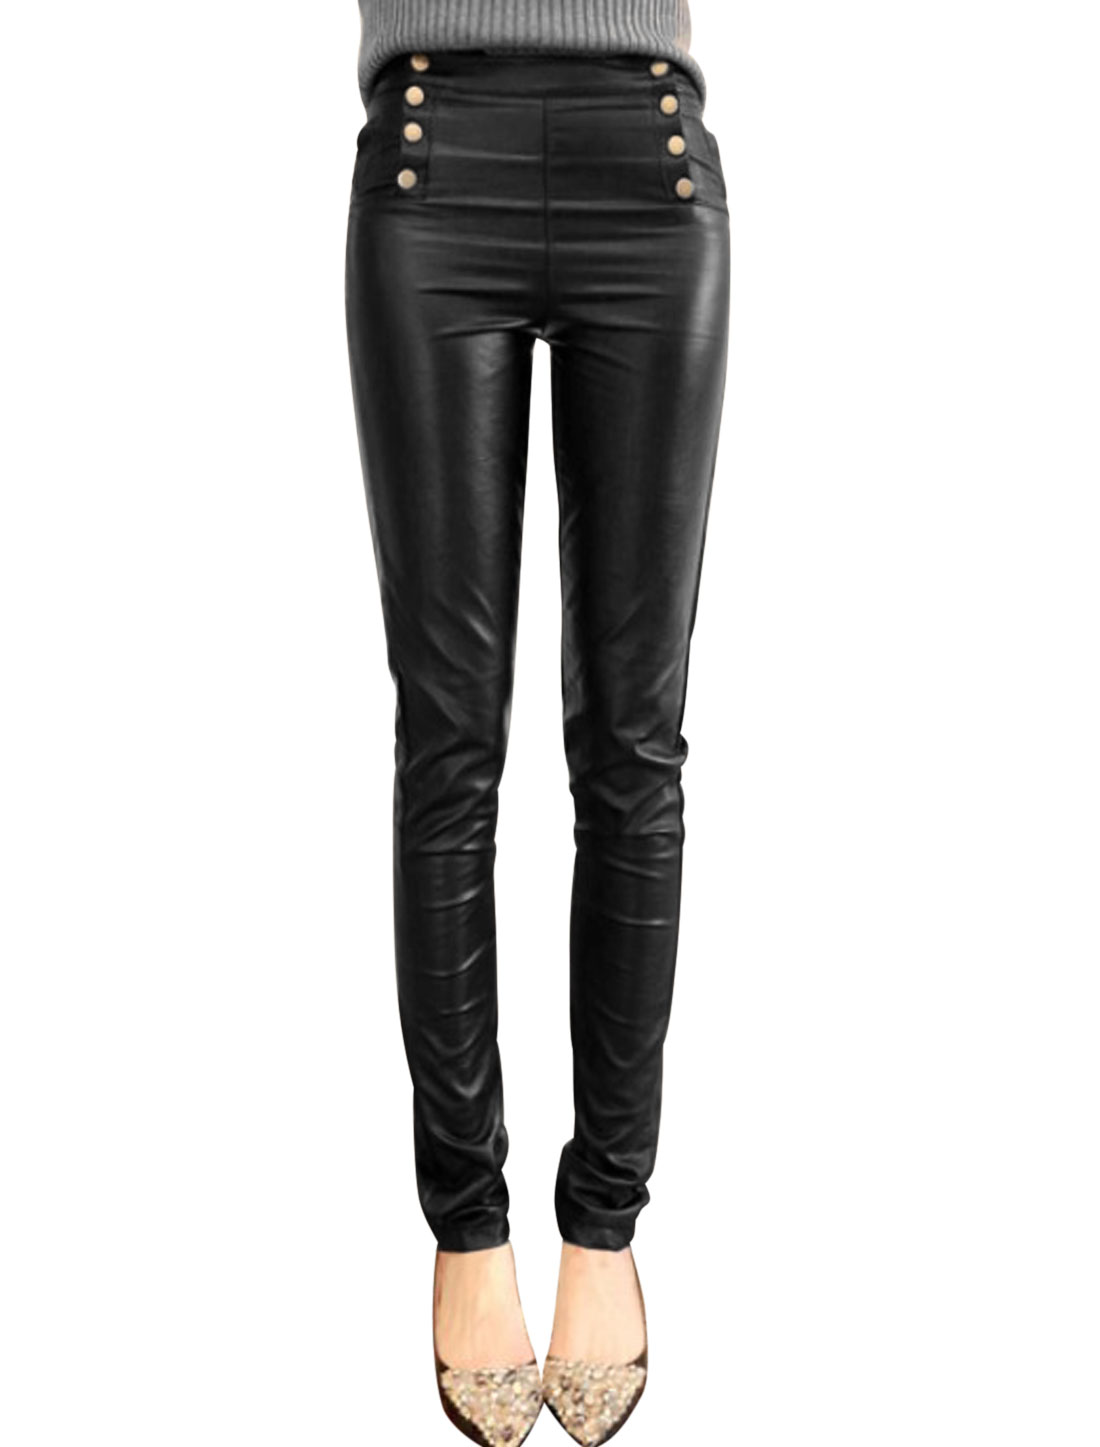 Women Snap Fastener Side Imitation Leather Pants Black S